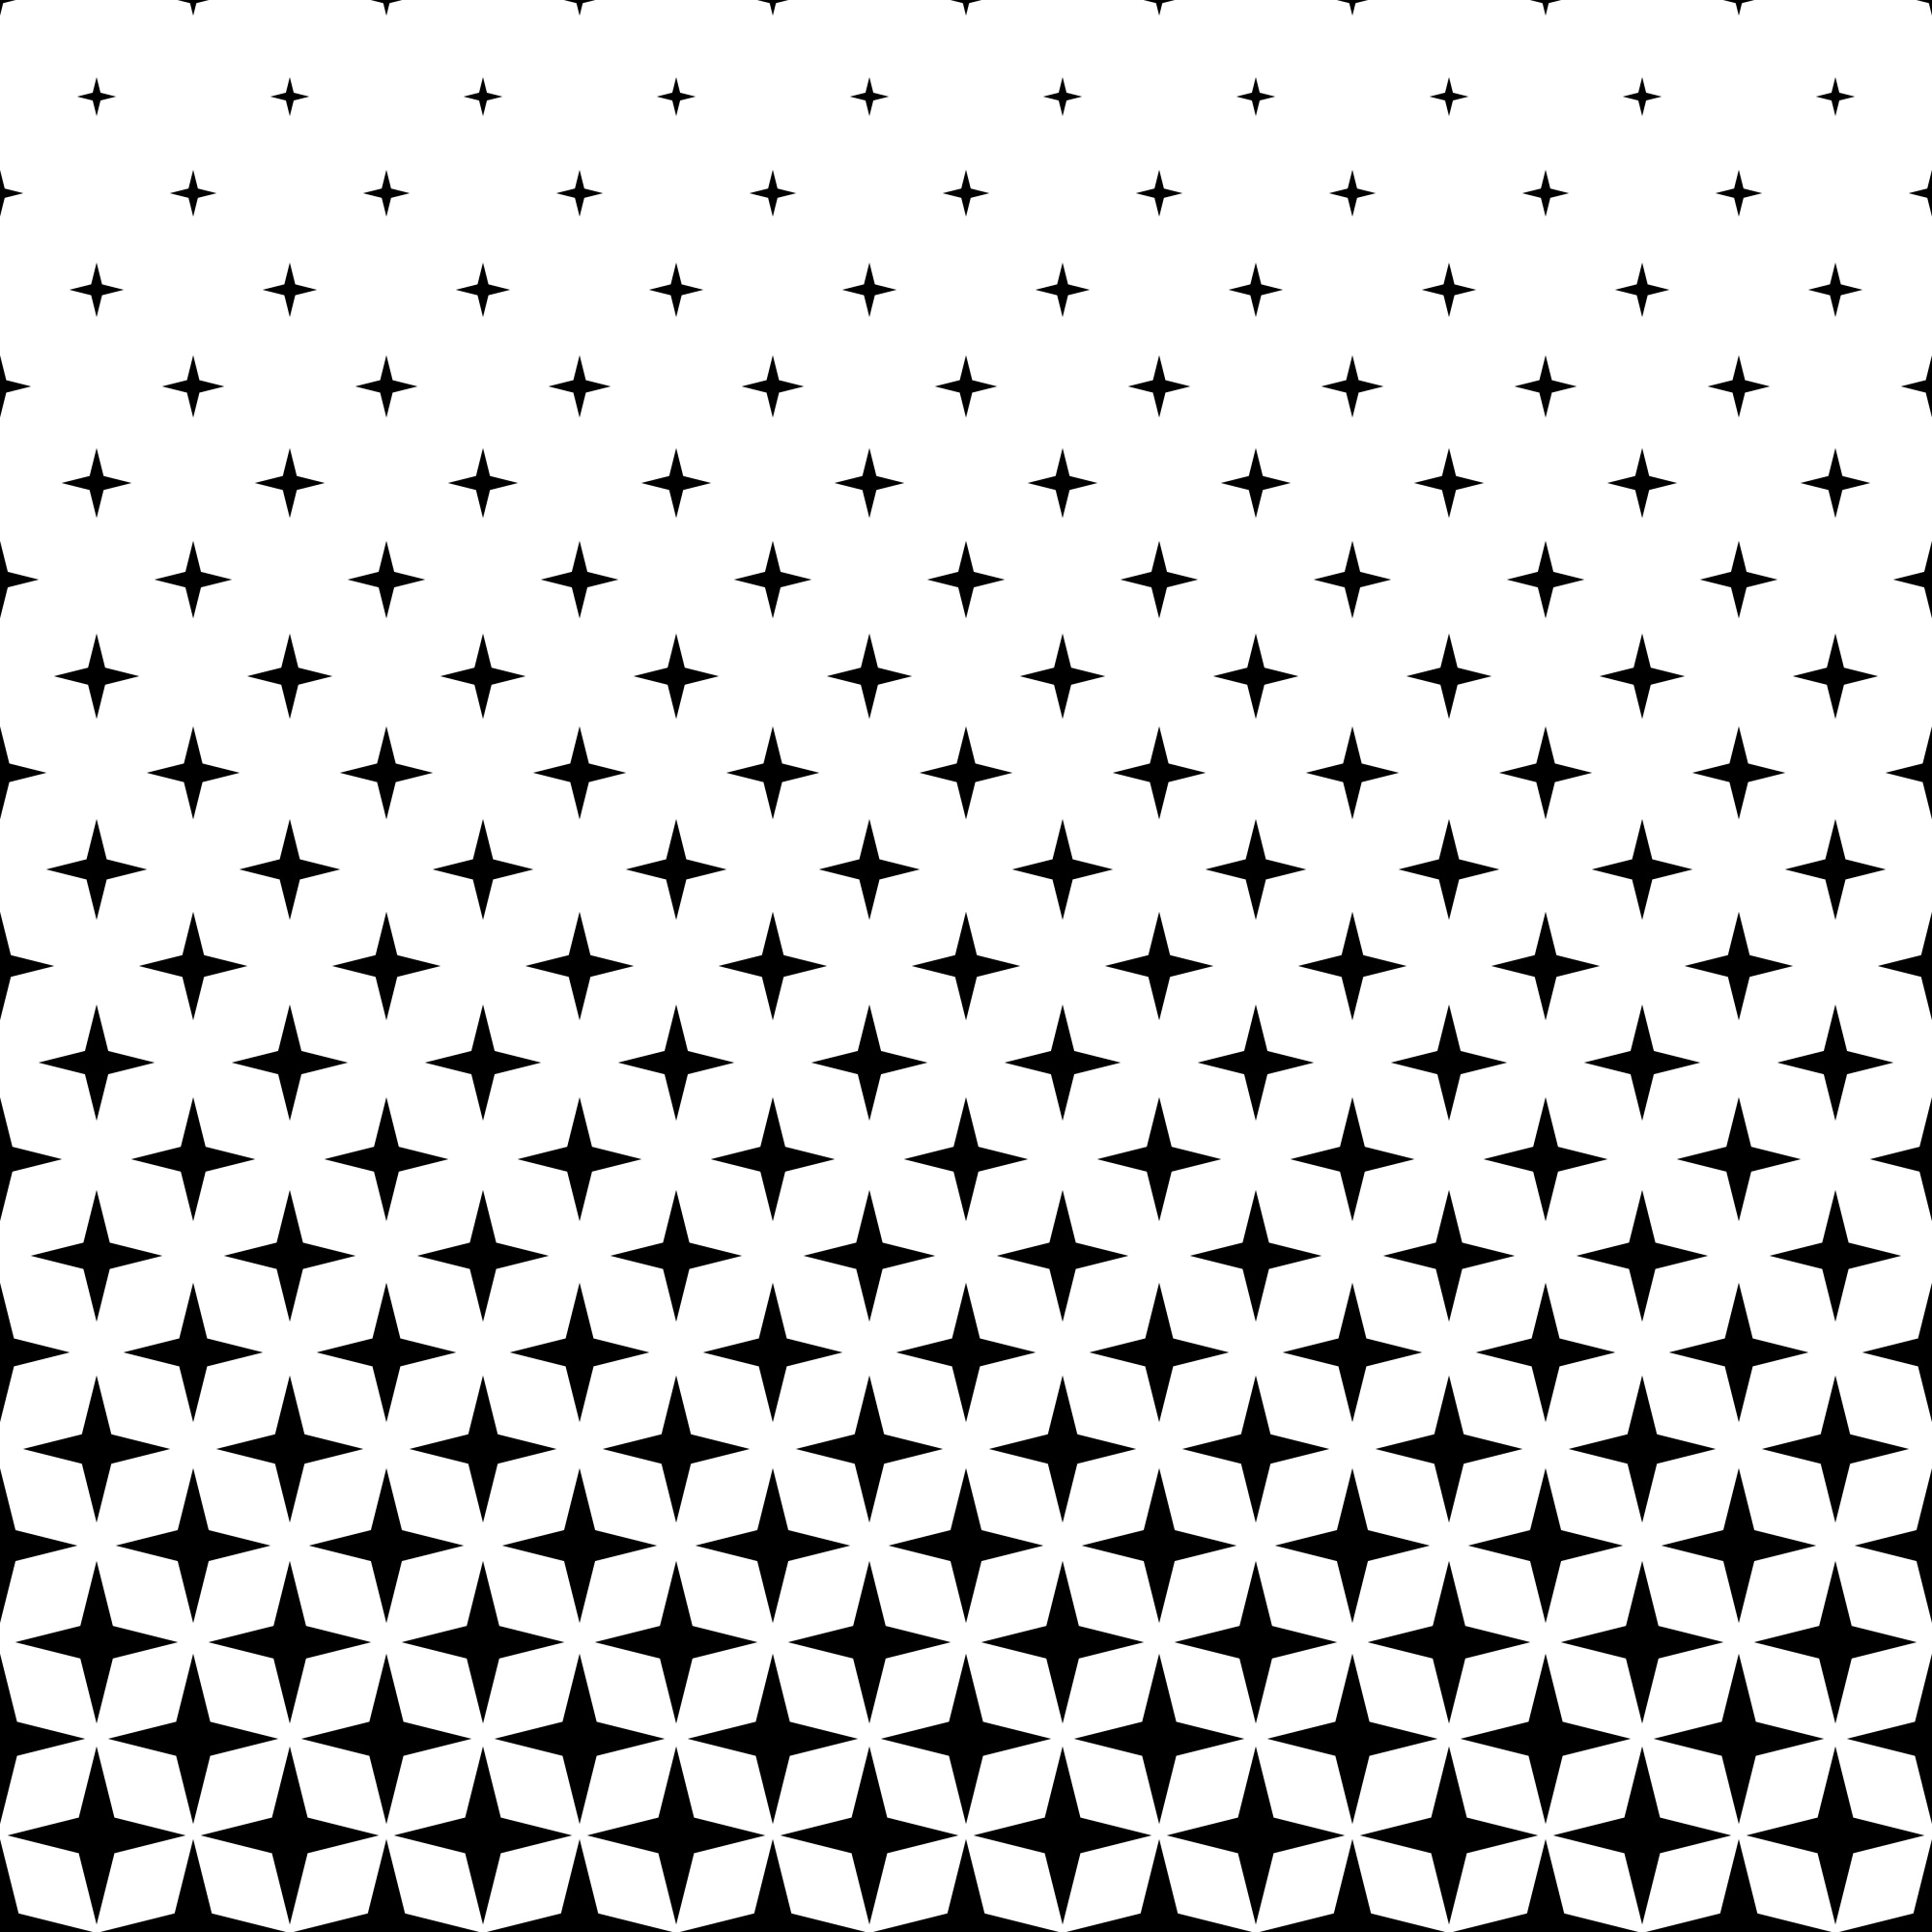 Monochrome star pattern - abstract vector background from geometric shapes